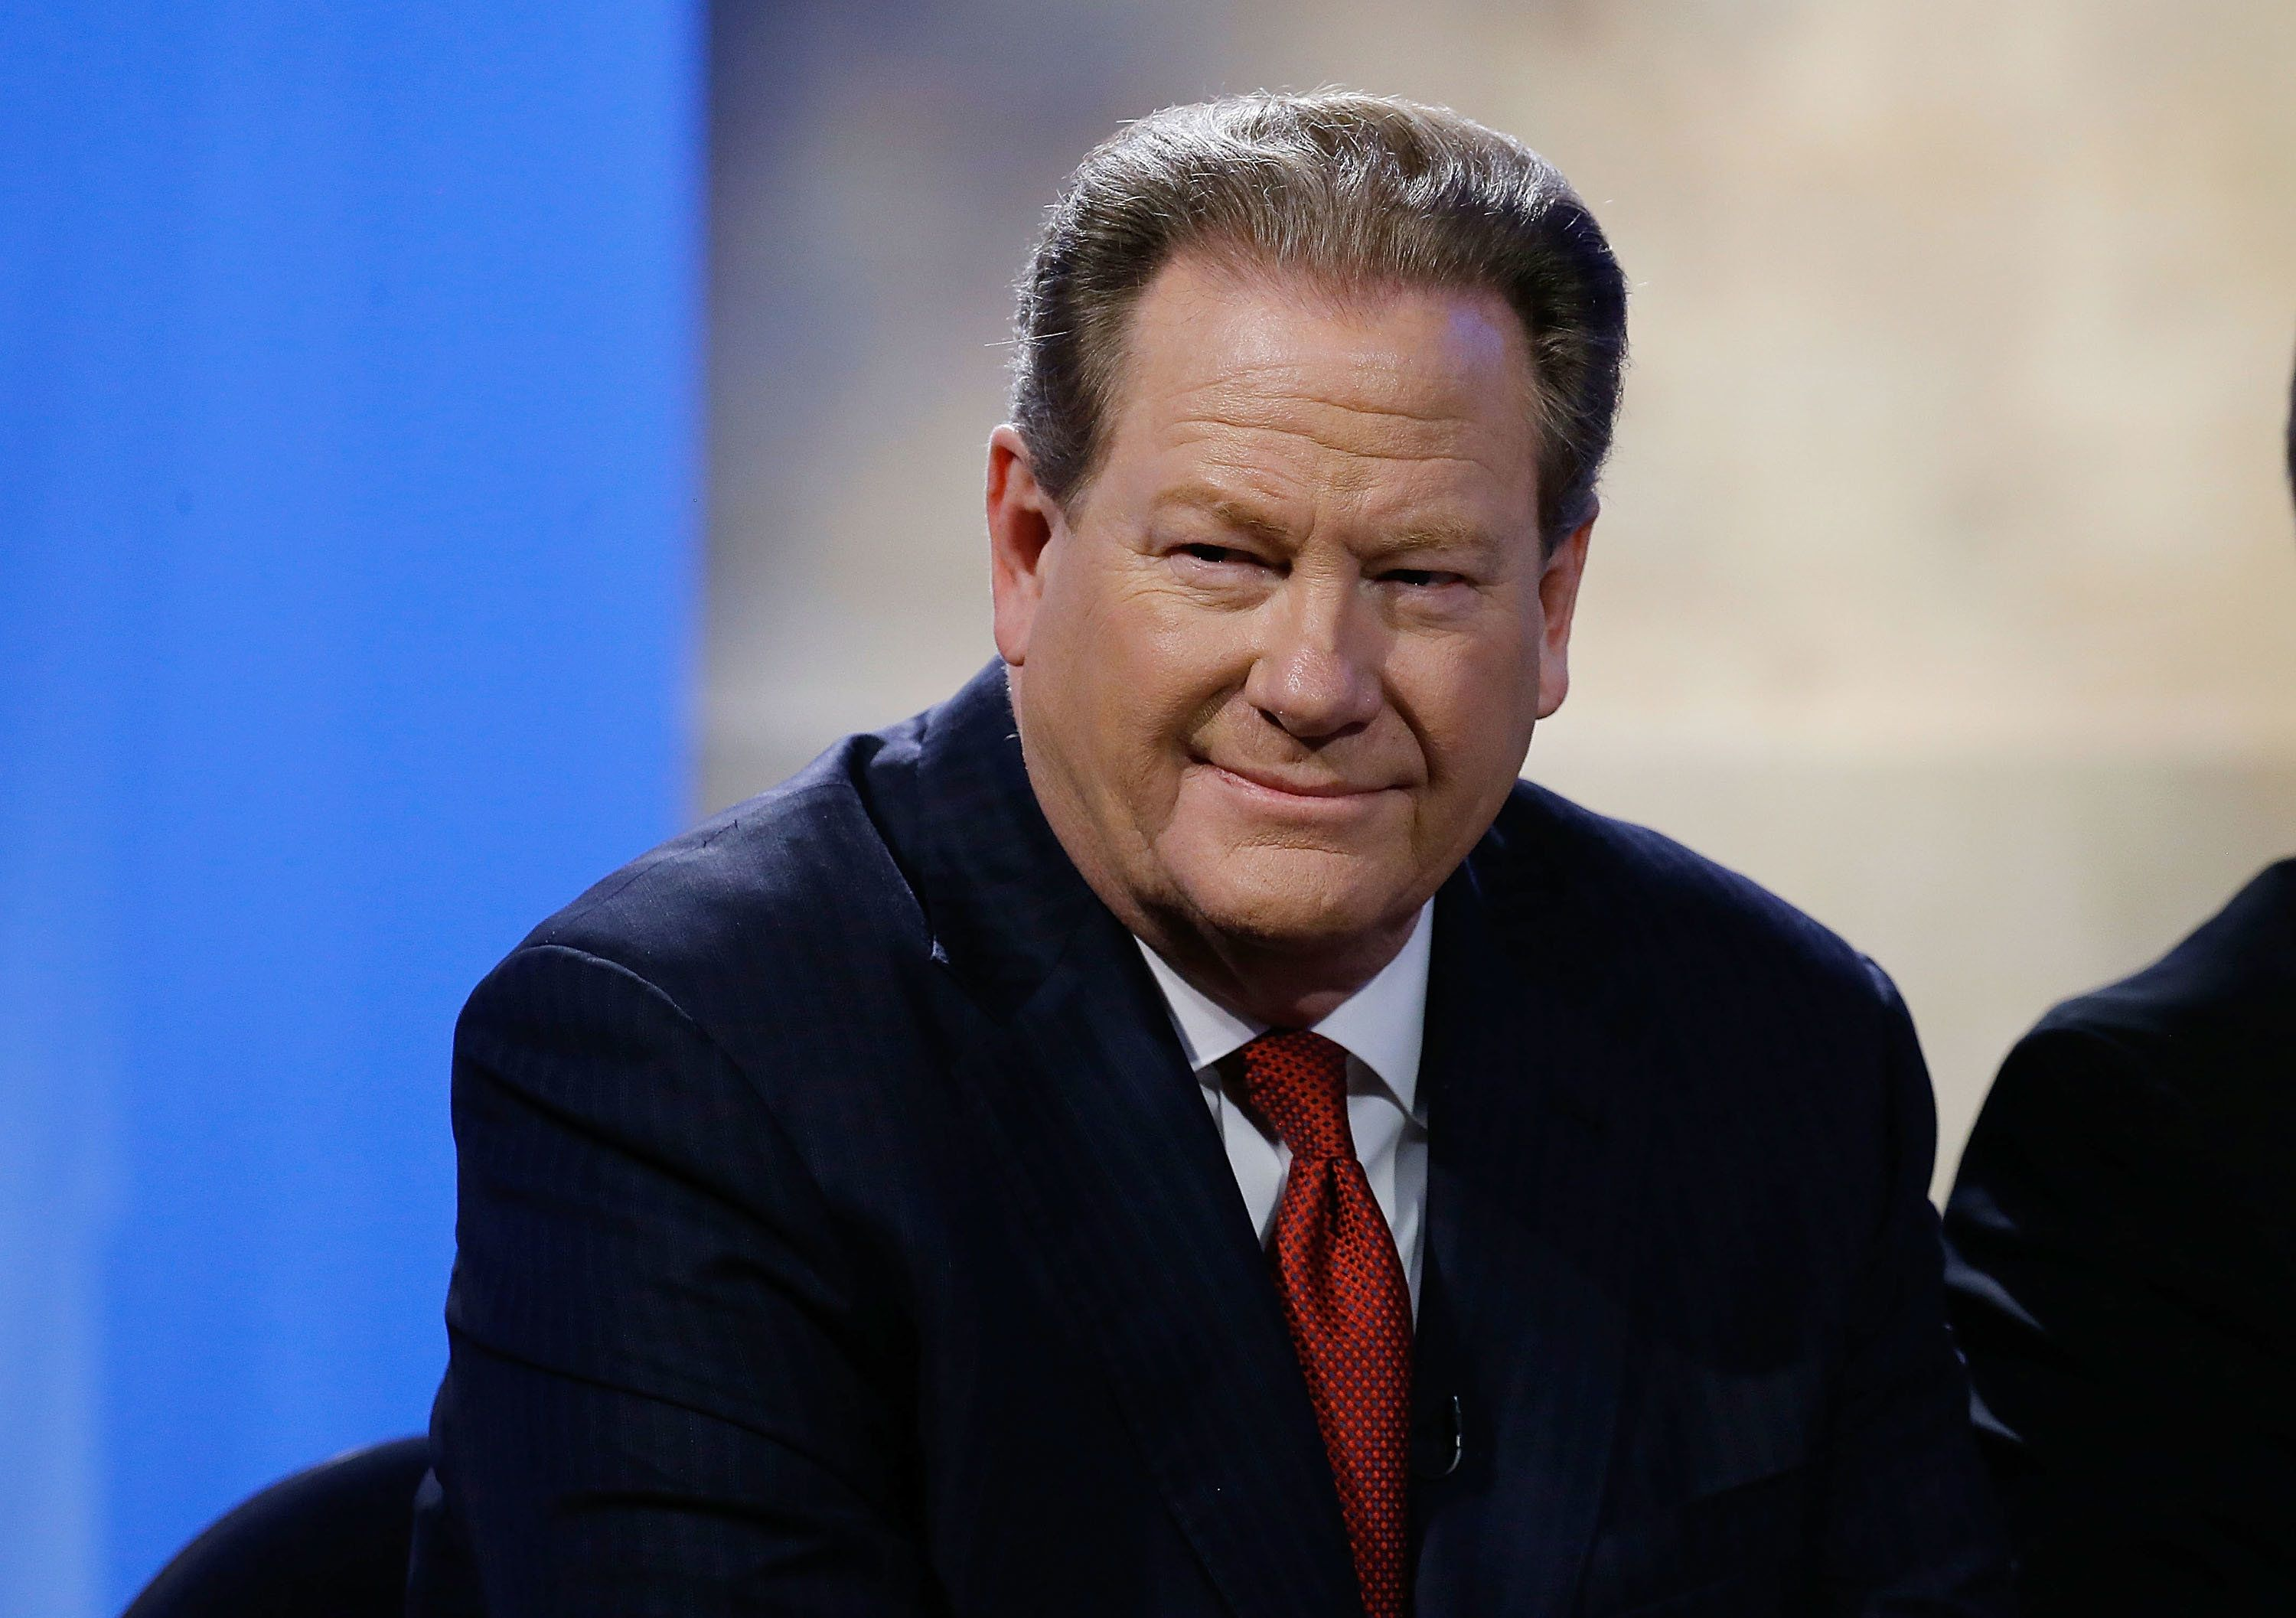 Ed Schultz, Progressive Talk Media Personality, Dies at 64